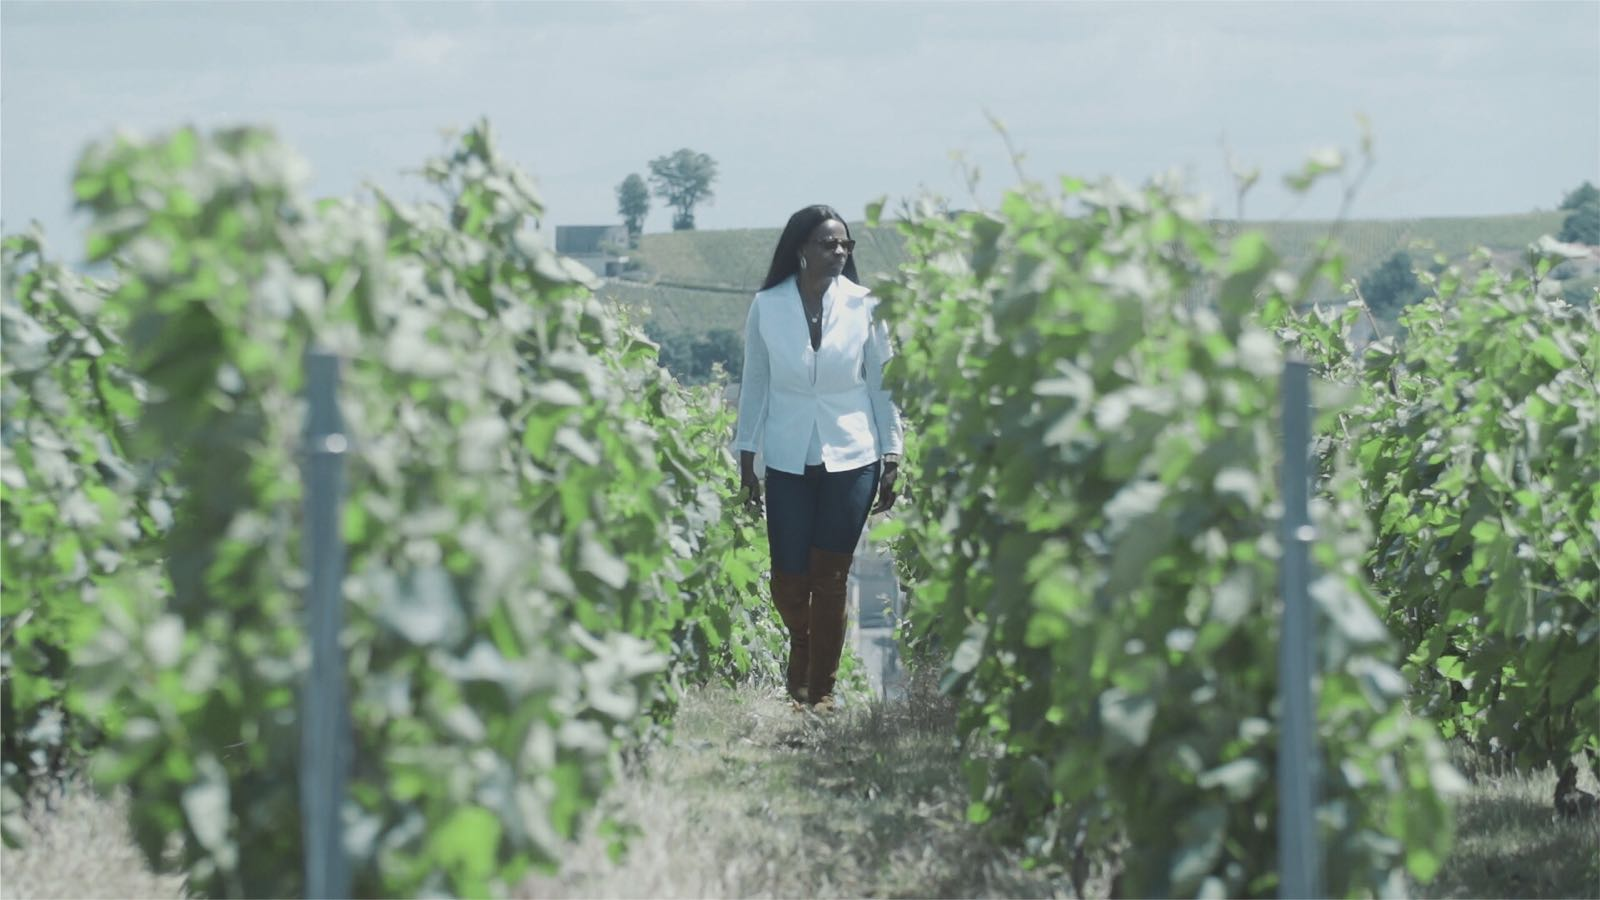 Champagne Les Cinq Filles Cuvee - Yvonne walking among the Vines